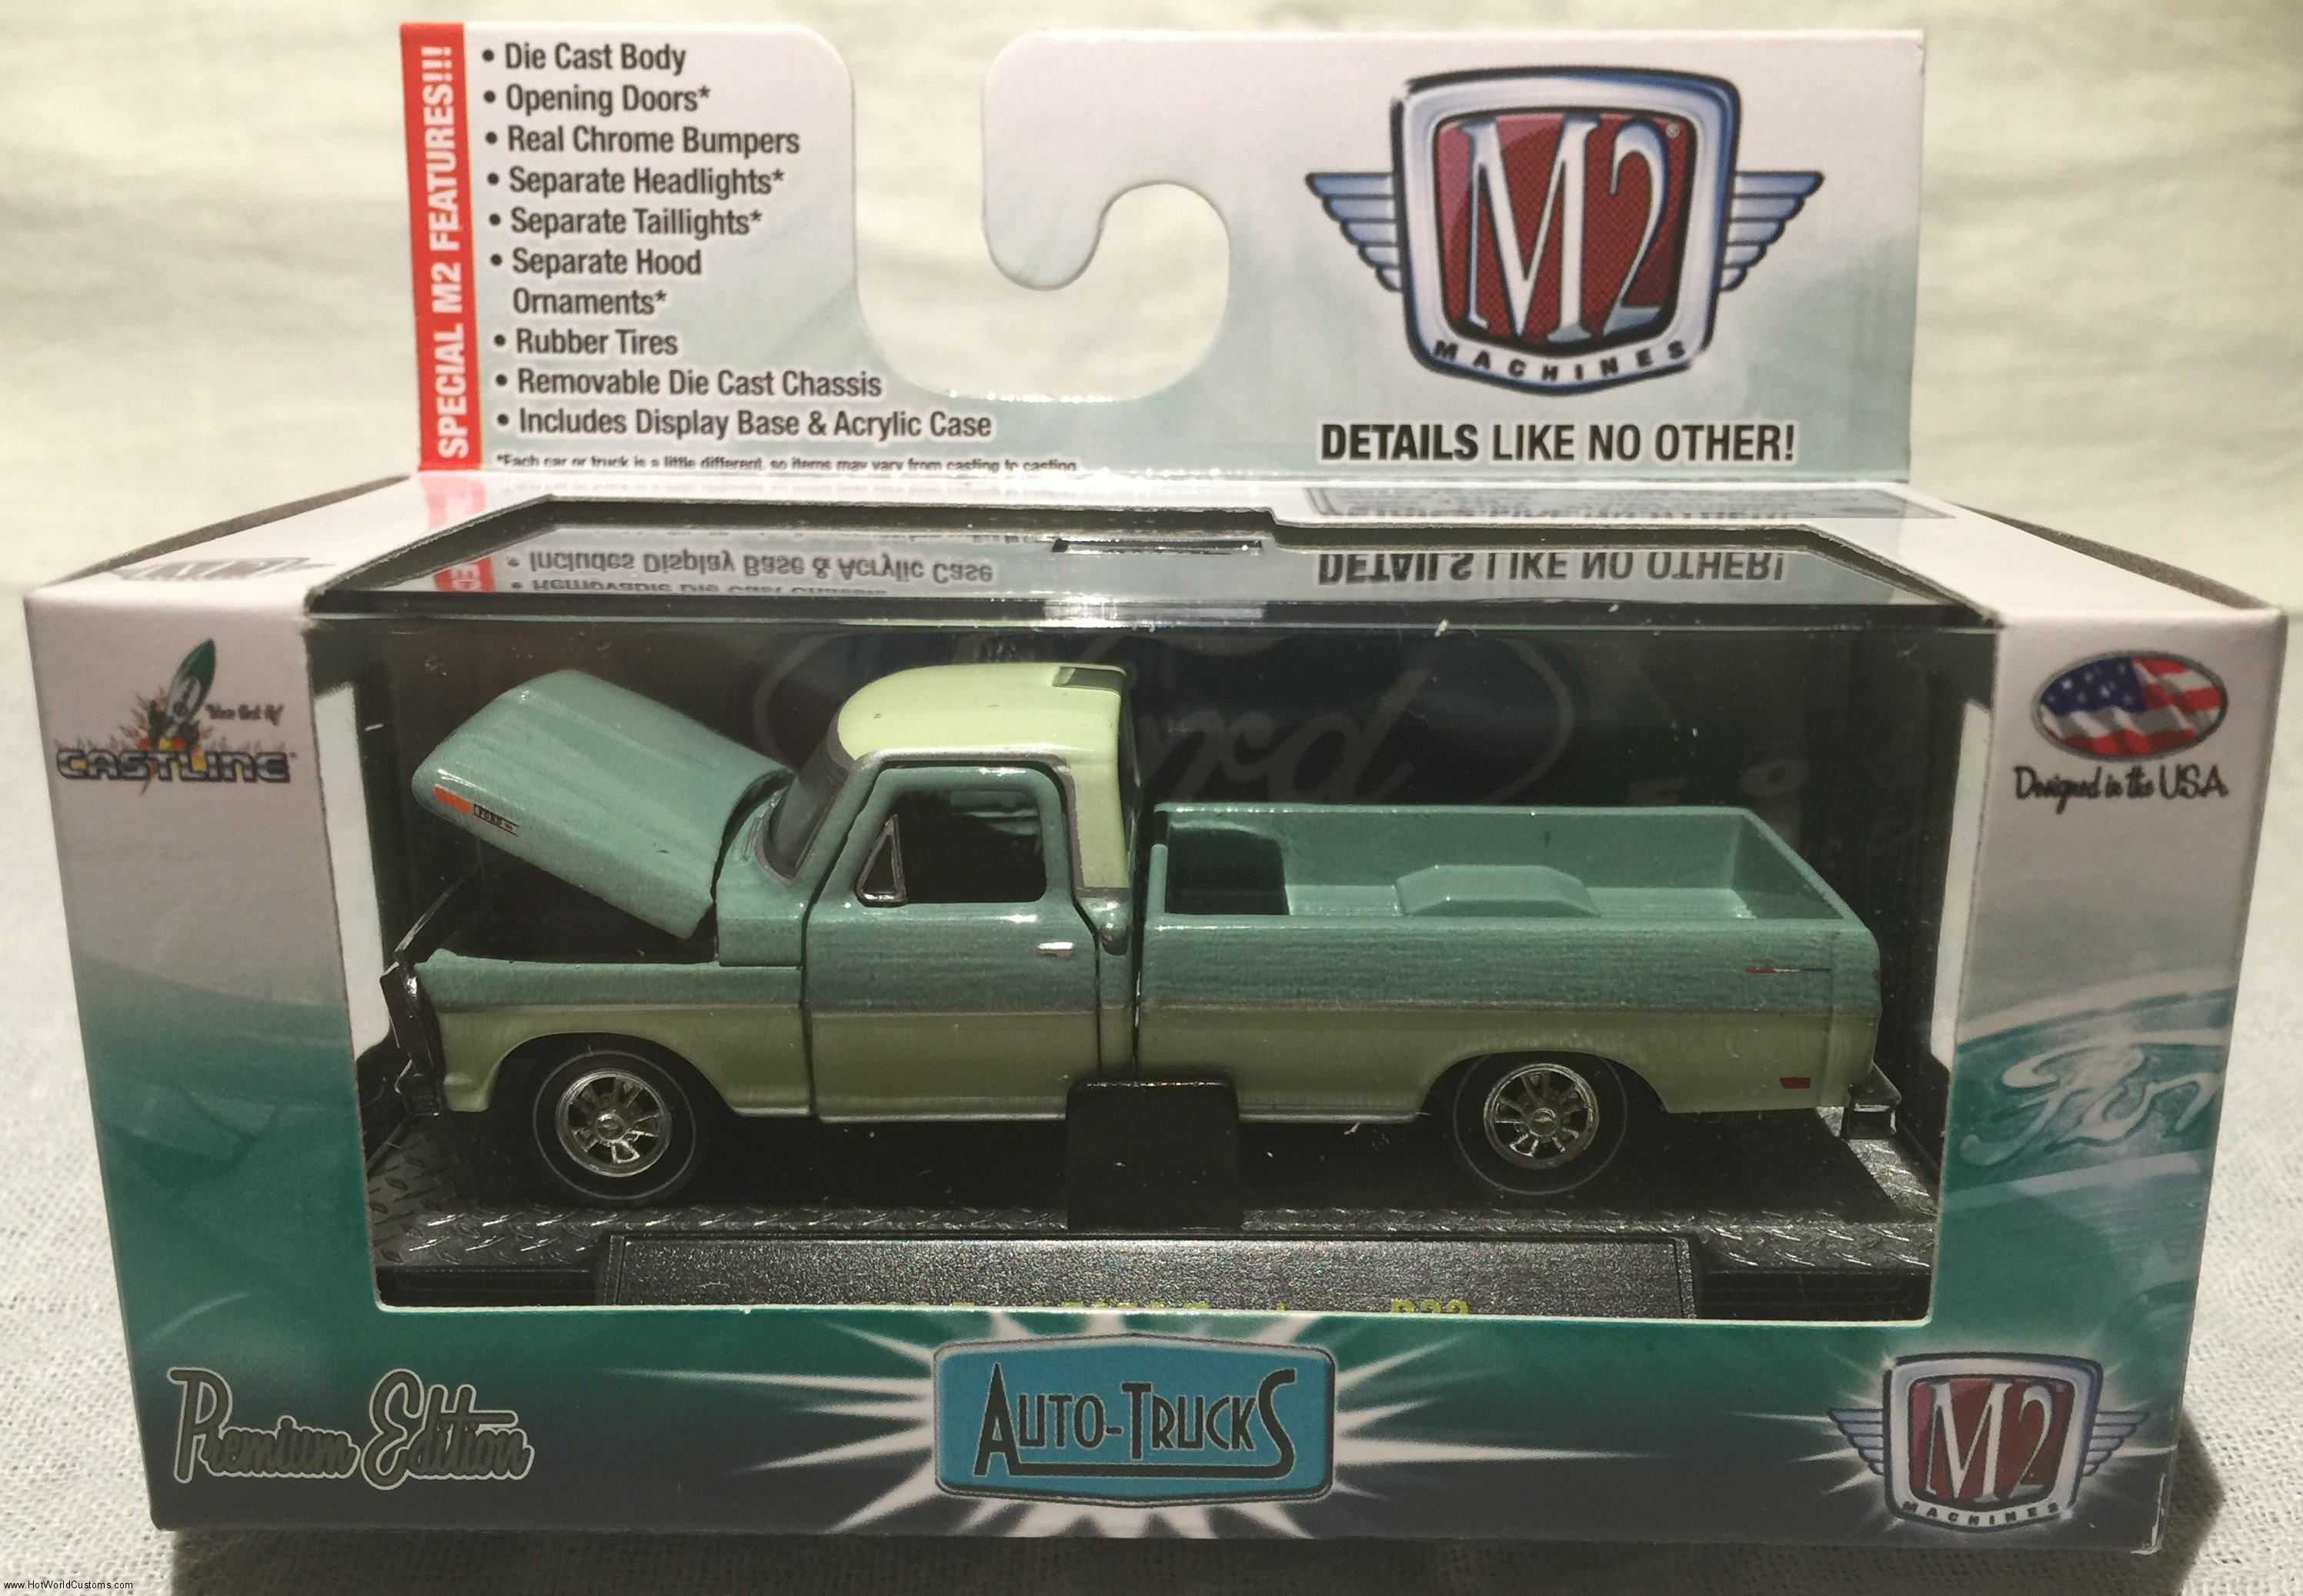 Out Of The Box M2 Machines Auto Trucks Release 32 Hot World Customs 1969 Ford Econoline Van 1965 Camper Tropical Turquoise W Interior